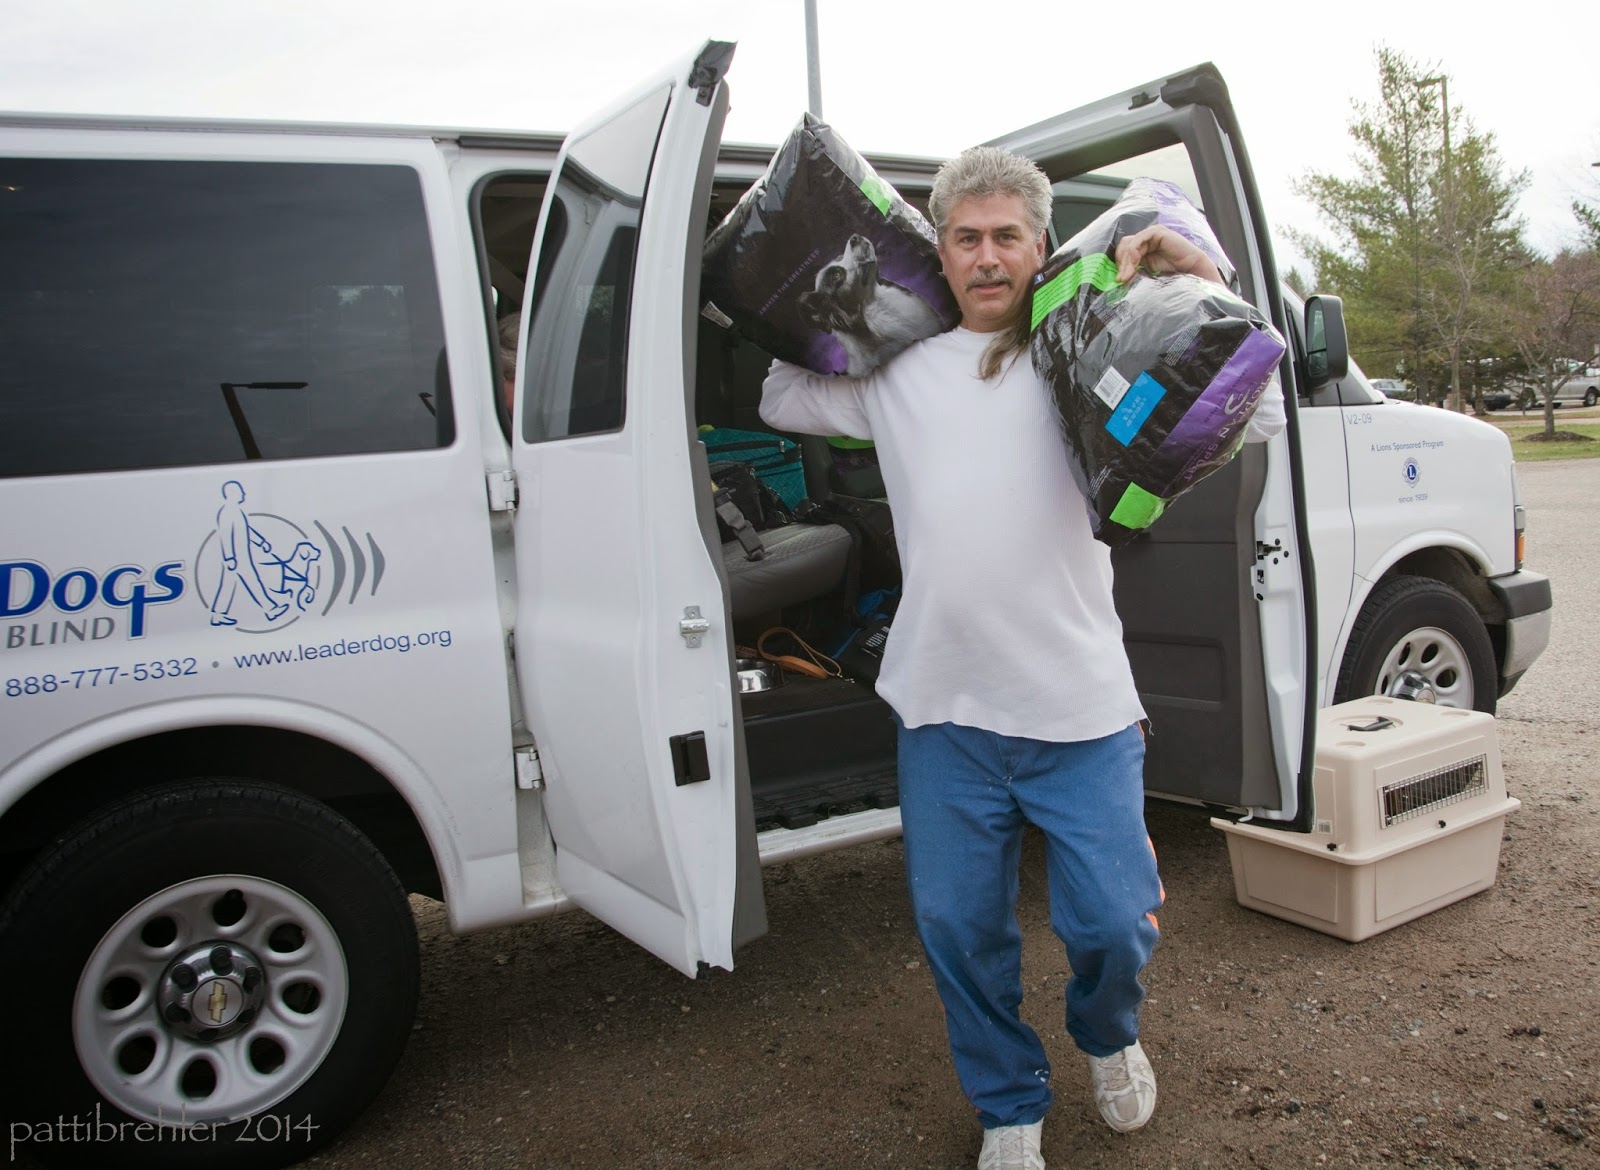 A man wearing a white t-shirt and blue prison pants is facing the camera holding two large bags of dogfood, one on each shoulder. He is stepping forward away from the two open side doors of the large white Leader Dogs for the Blind van. There is a small dog airline crate on the ground next to the front tire of the van ont he right side.